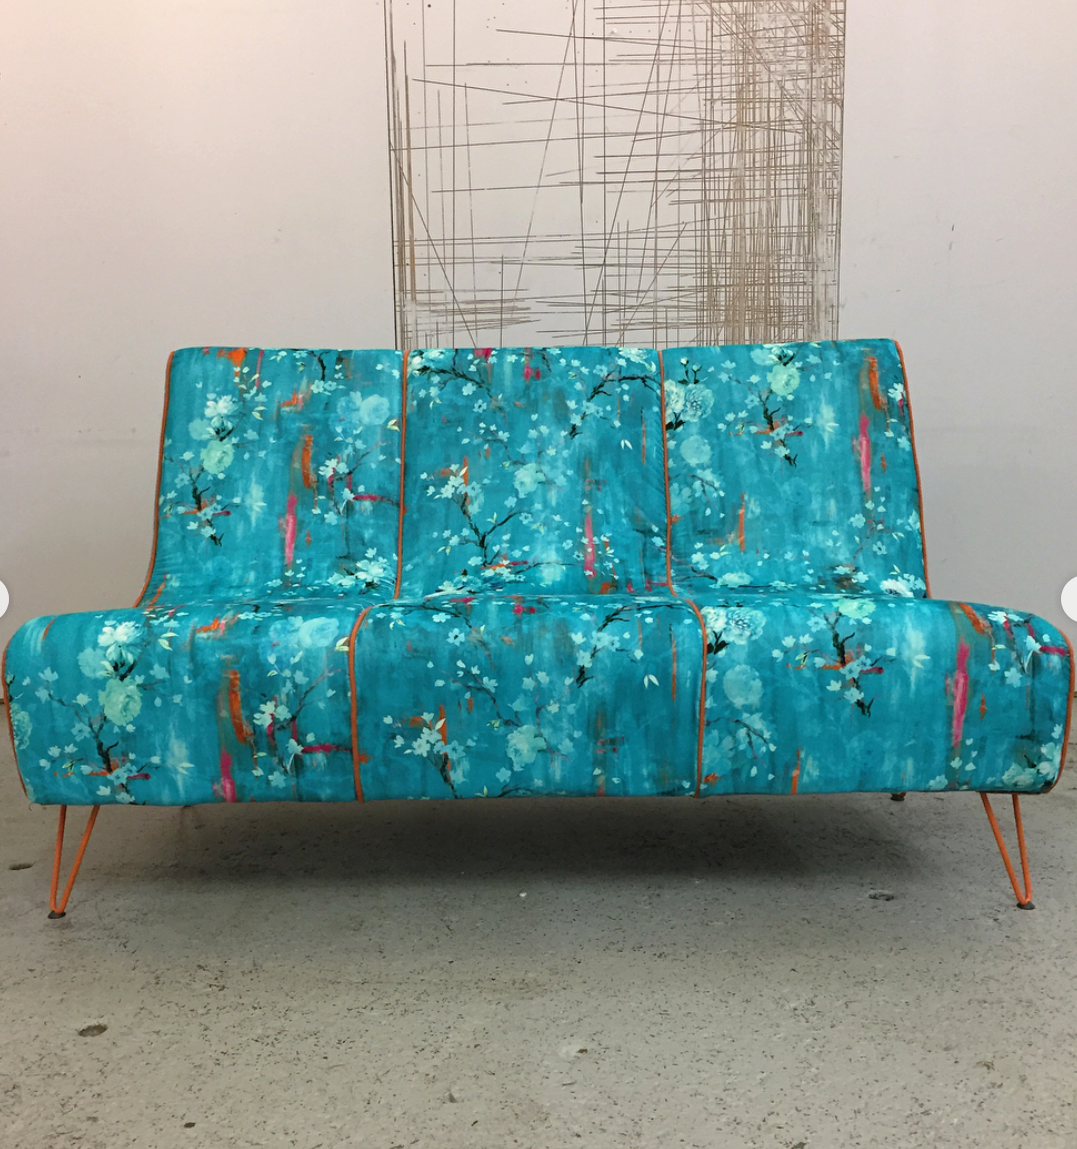 1970s sofa restored by Leigh-Anne Treadwell from The Bristol Upholstery Collective, using cotton velvet from Salon Libertine London in 'Perfumes of the Night Floral Edition', in 'Matisse Green'.